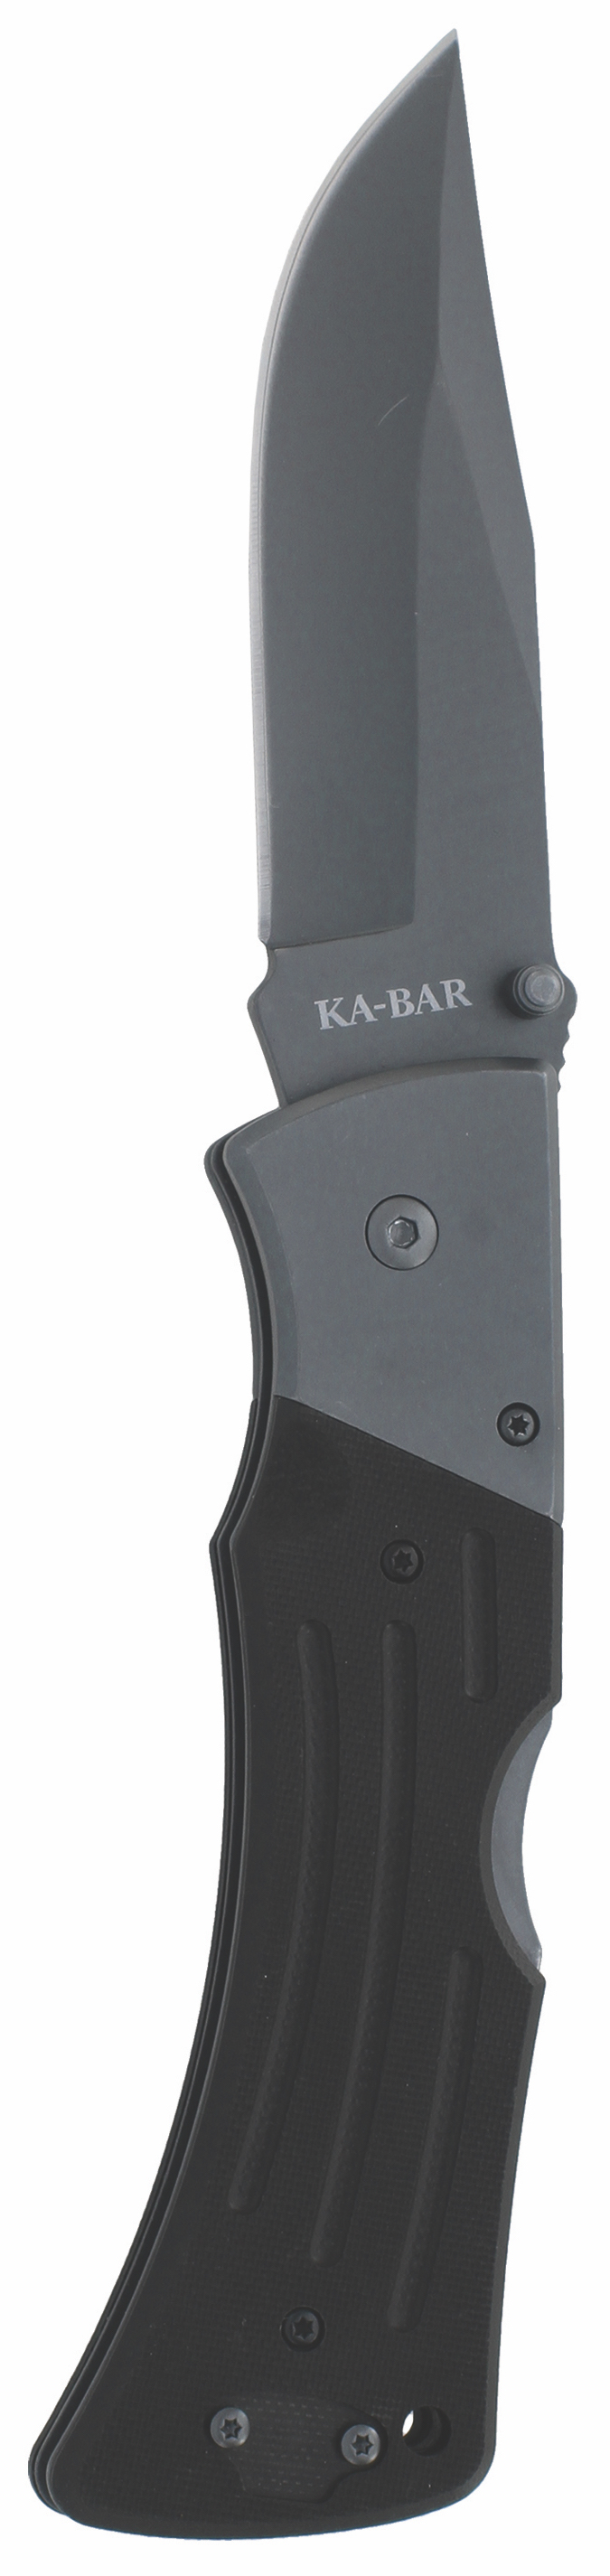 3062 - KA-BAR G10 MULE FOLDER II-BLACK, STR EDGE